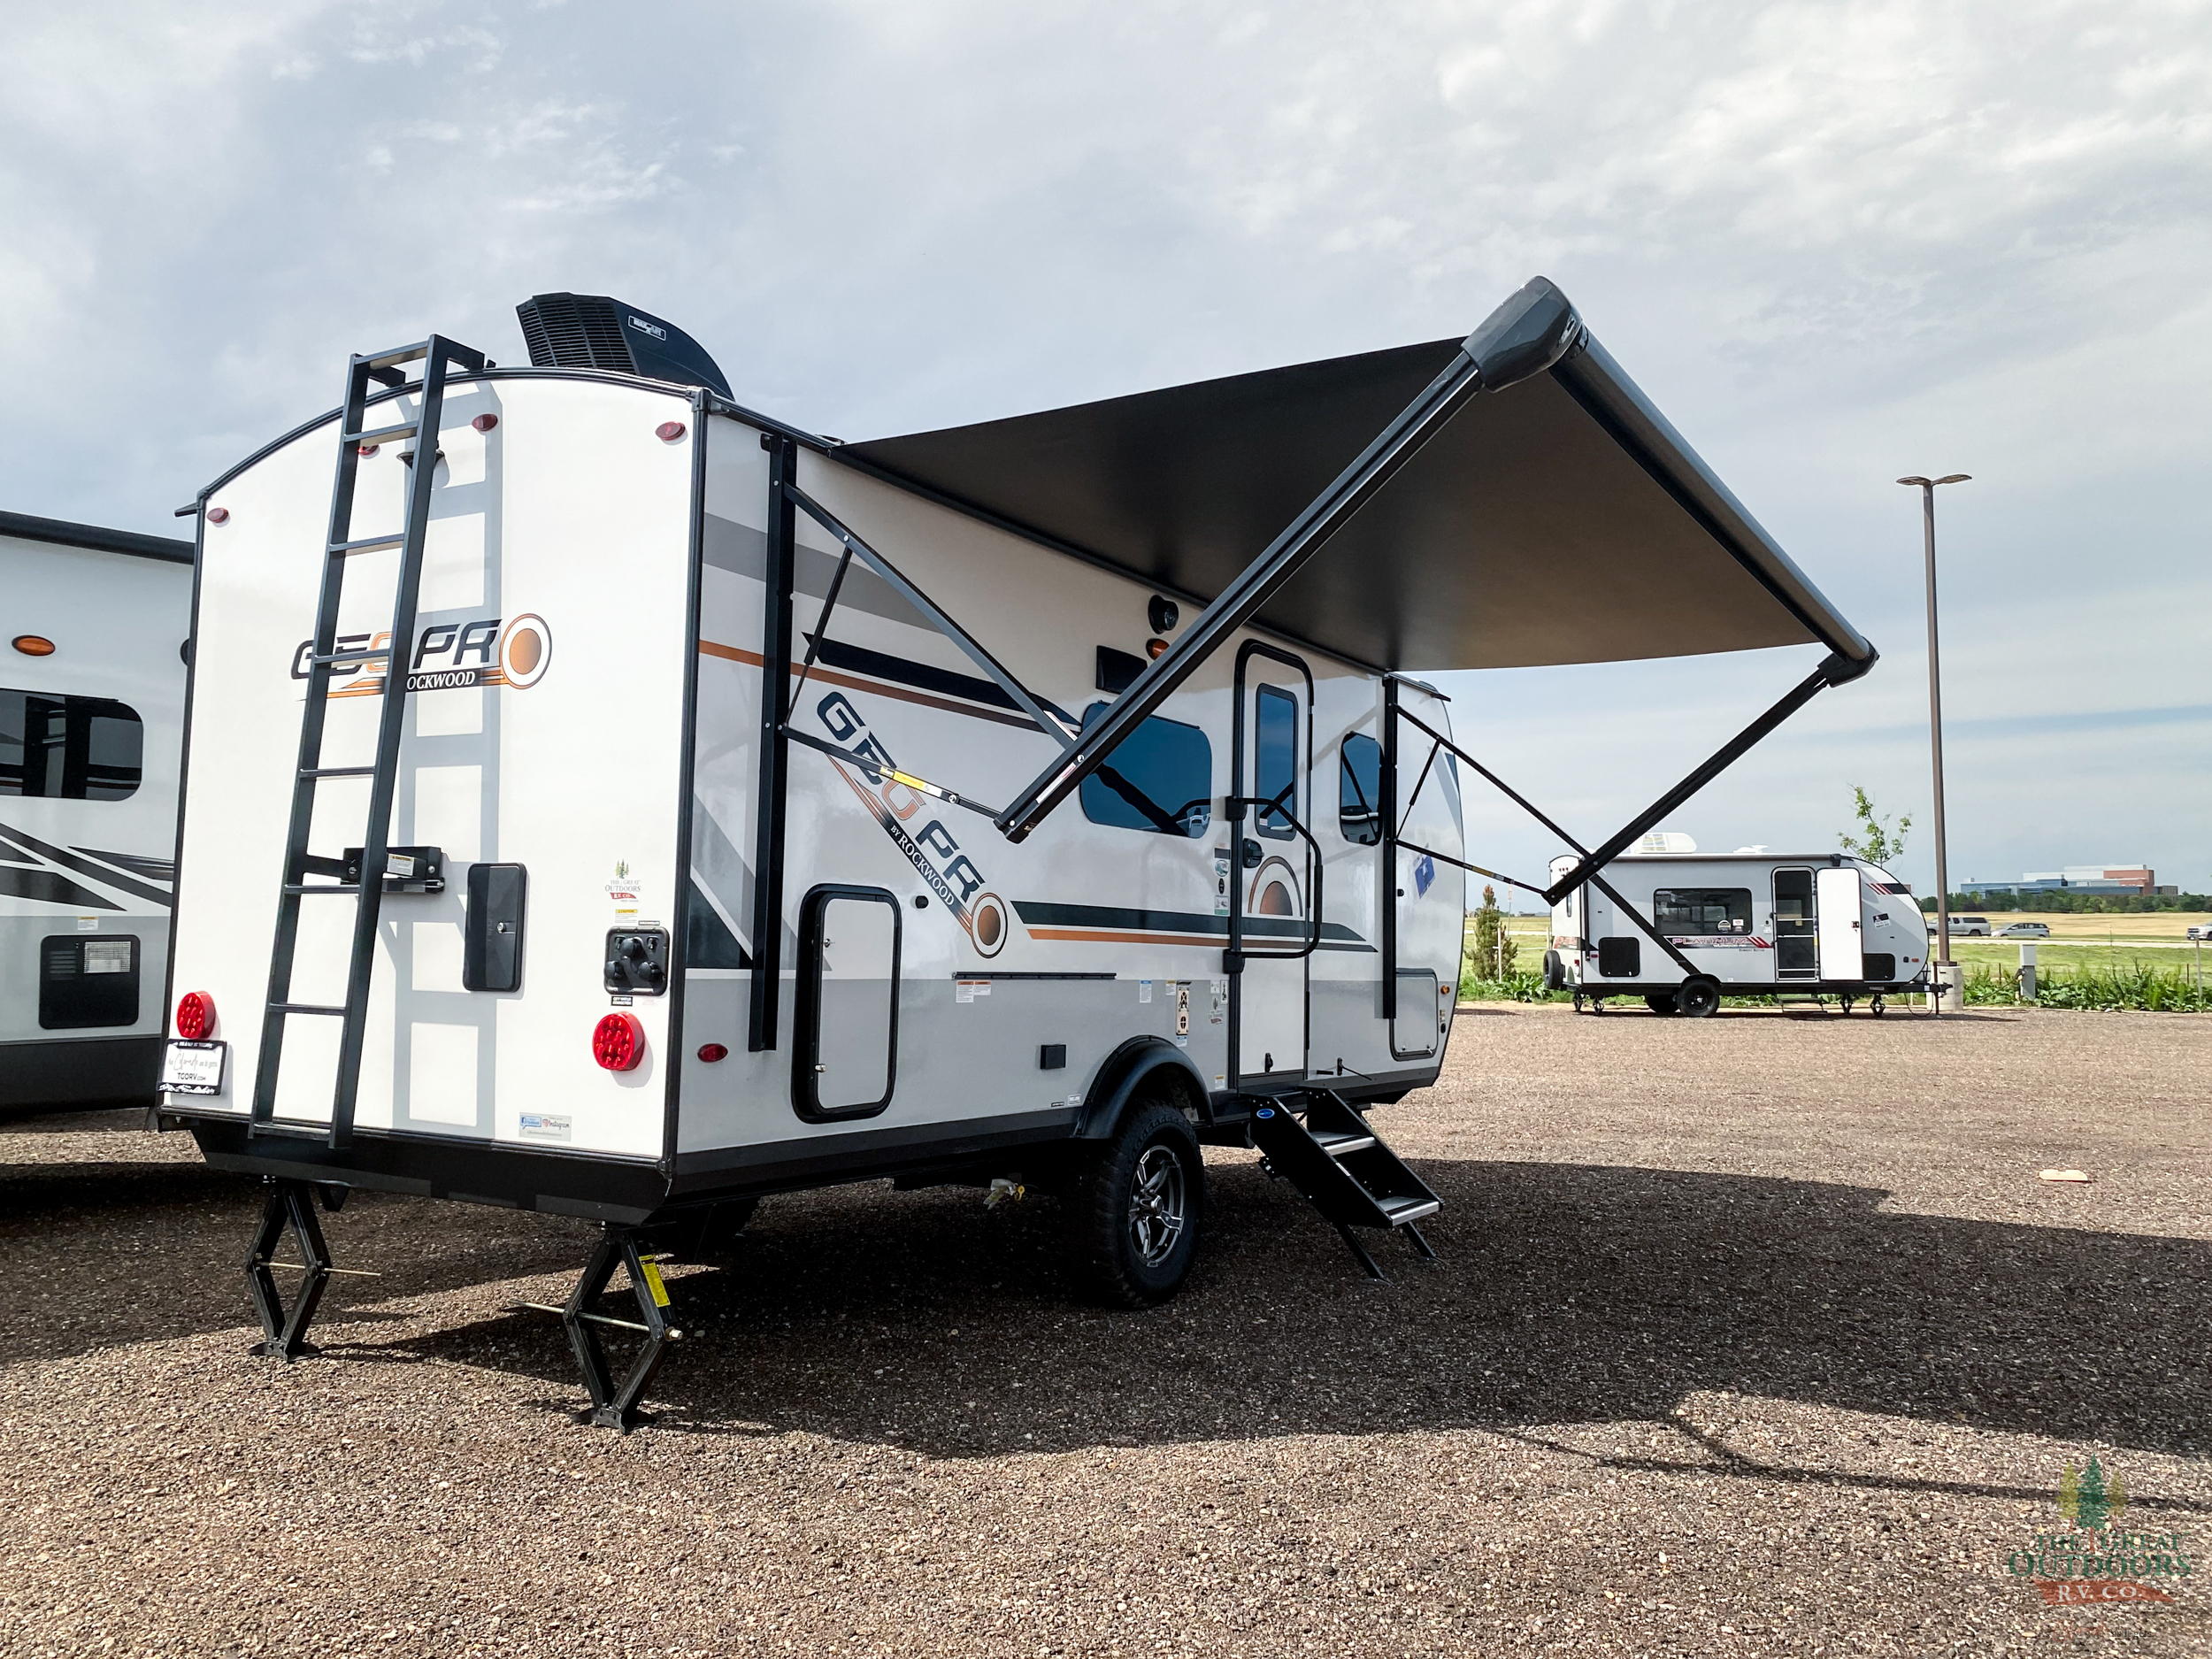 2021 FOREST RIVER ROCKWOOD GEO PRO 20FBS full